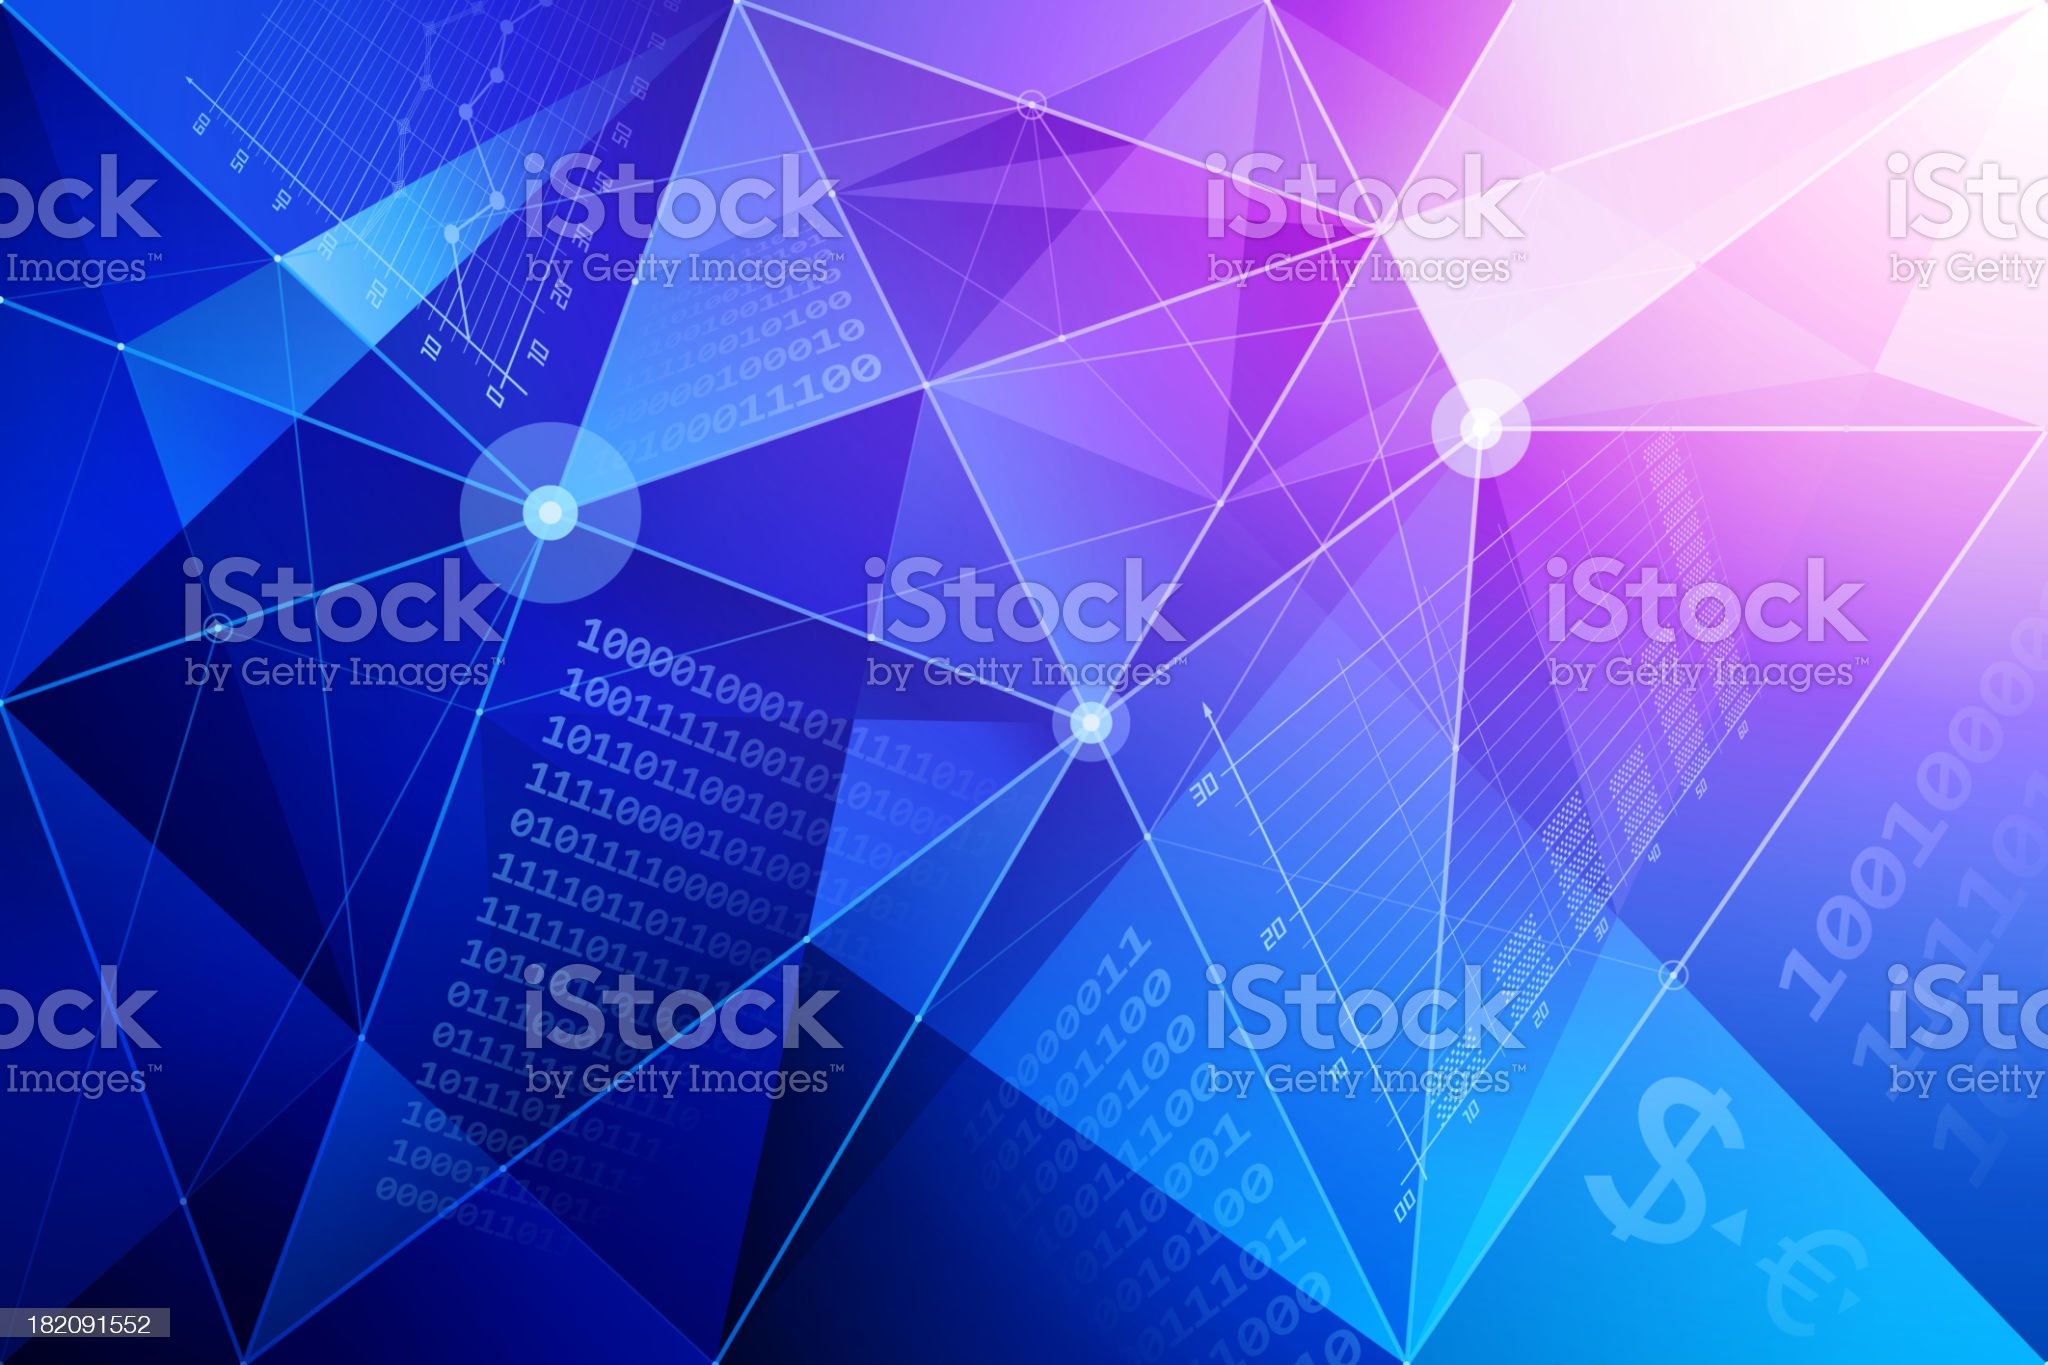 Abstract background with financial symbols royalty-free stock vector art